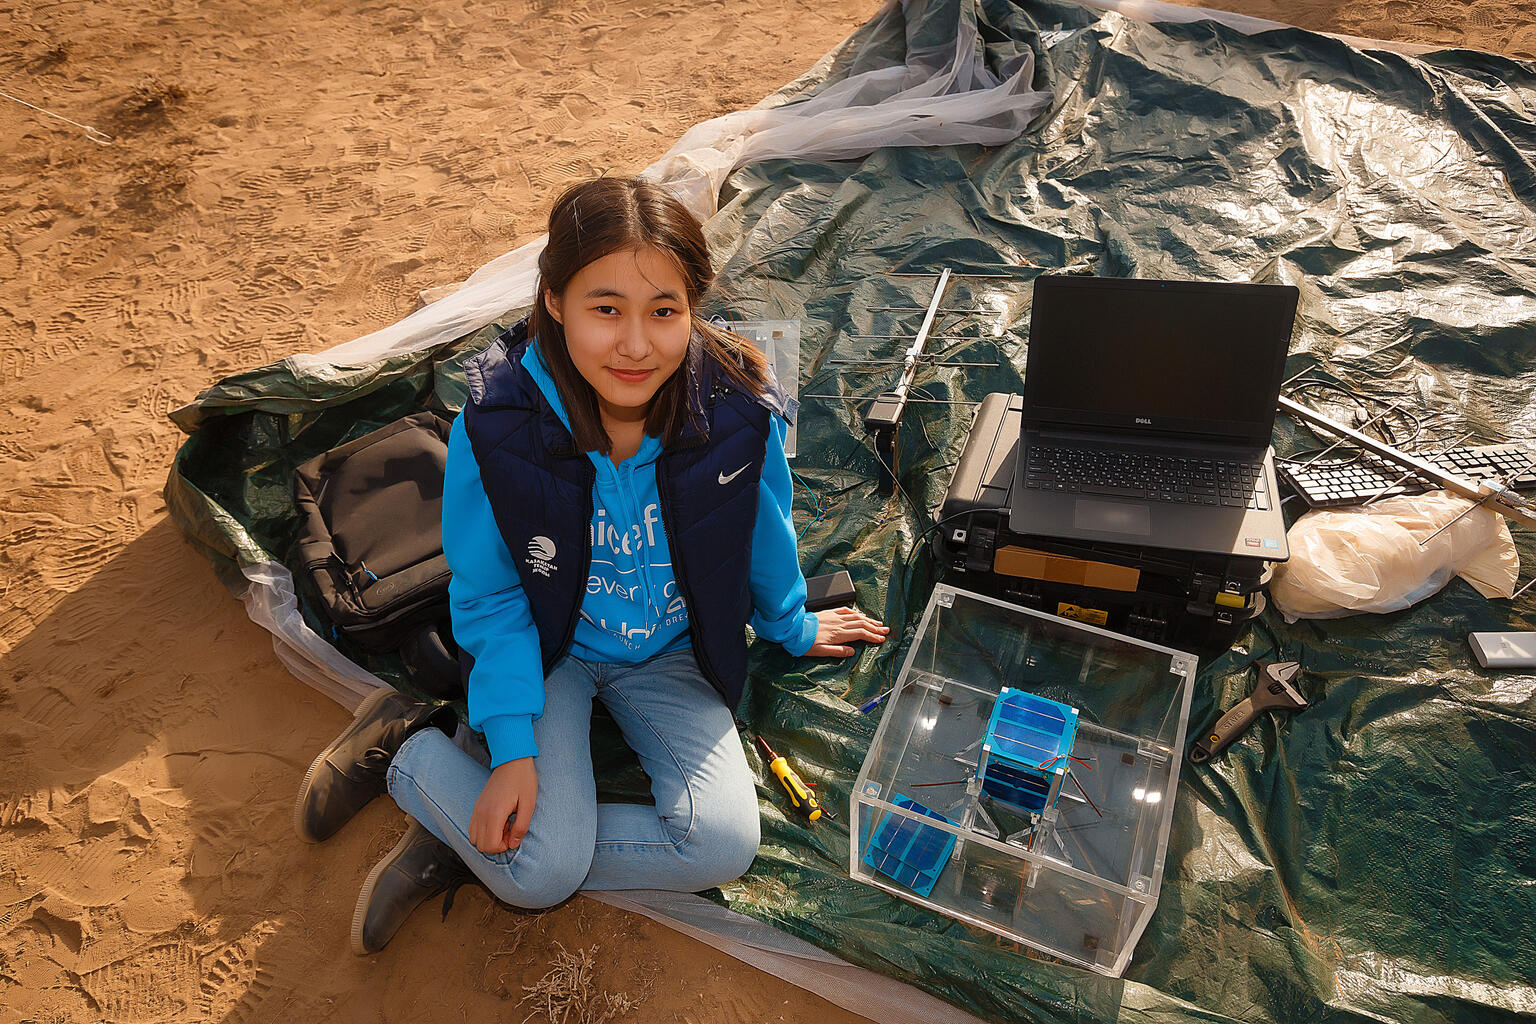 A girl sitting on the ground next to a nano-satellite looks up into the camera.